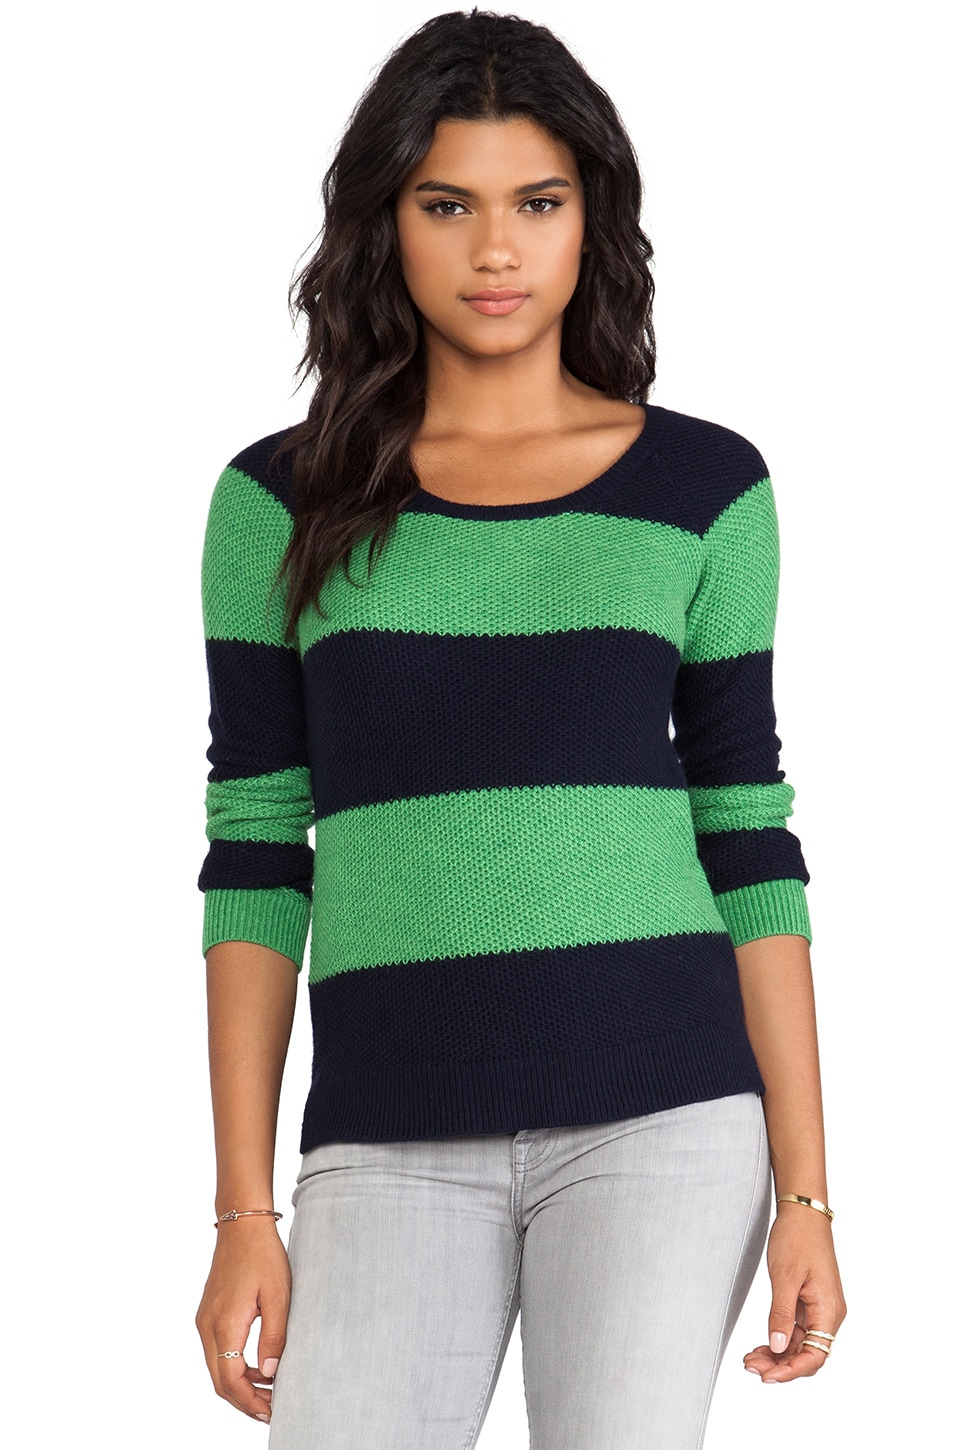 Splendid Honeycomb Sweater in Navy